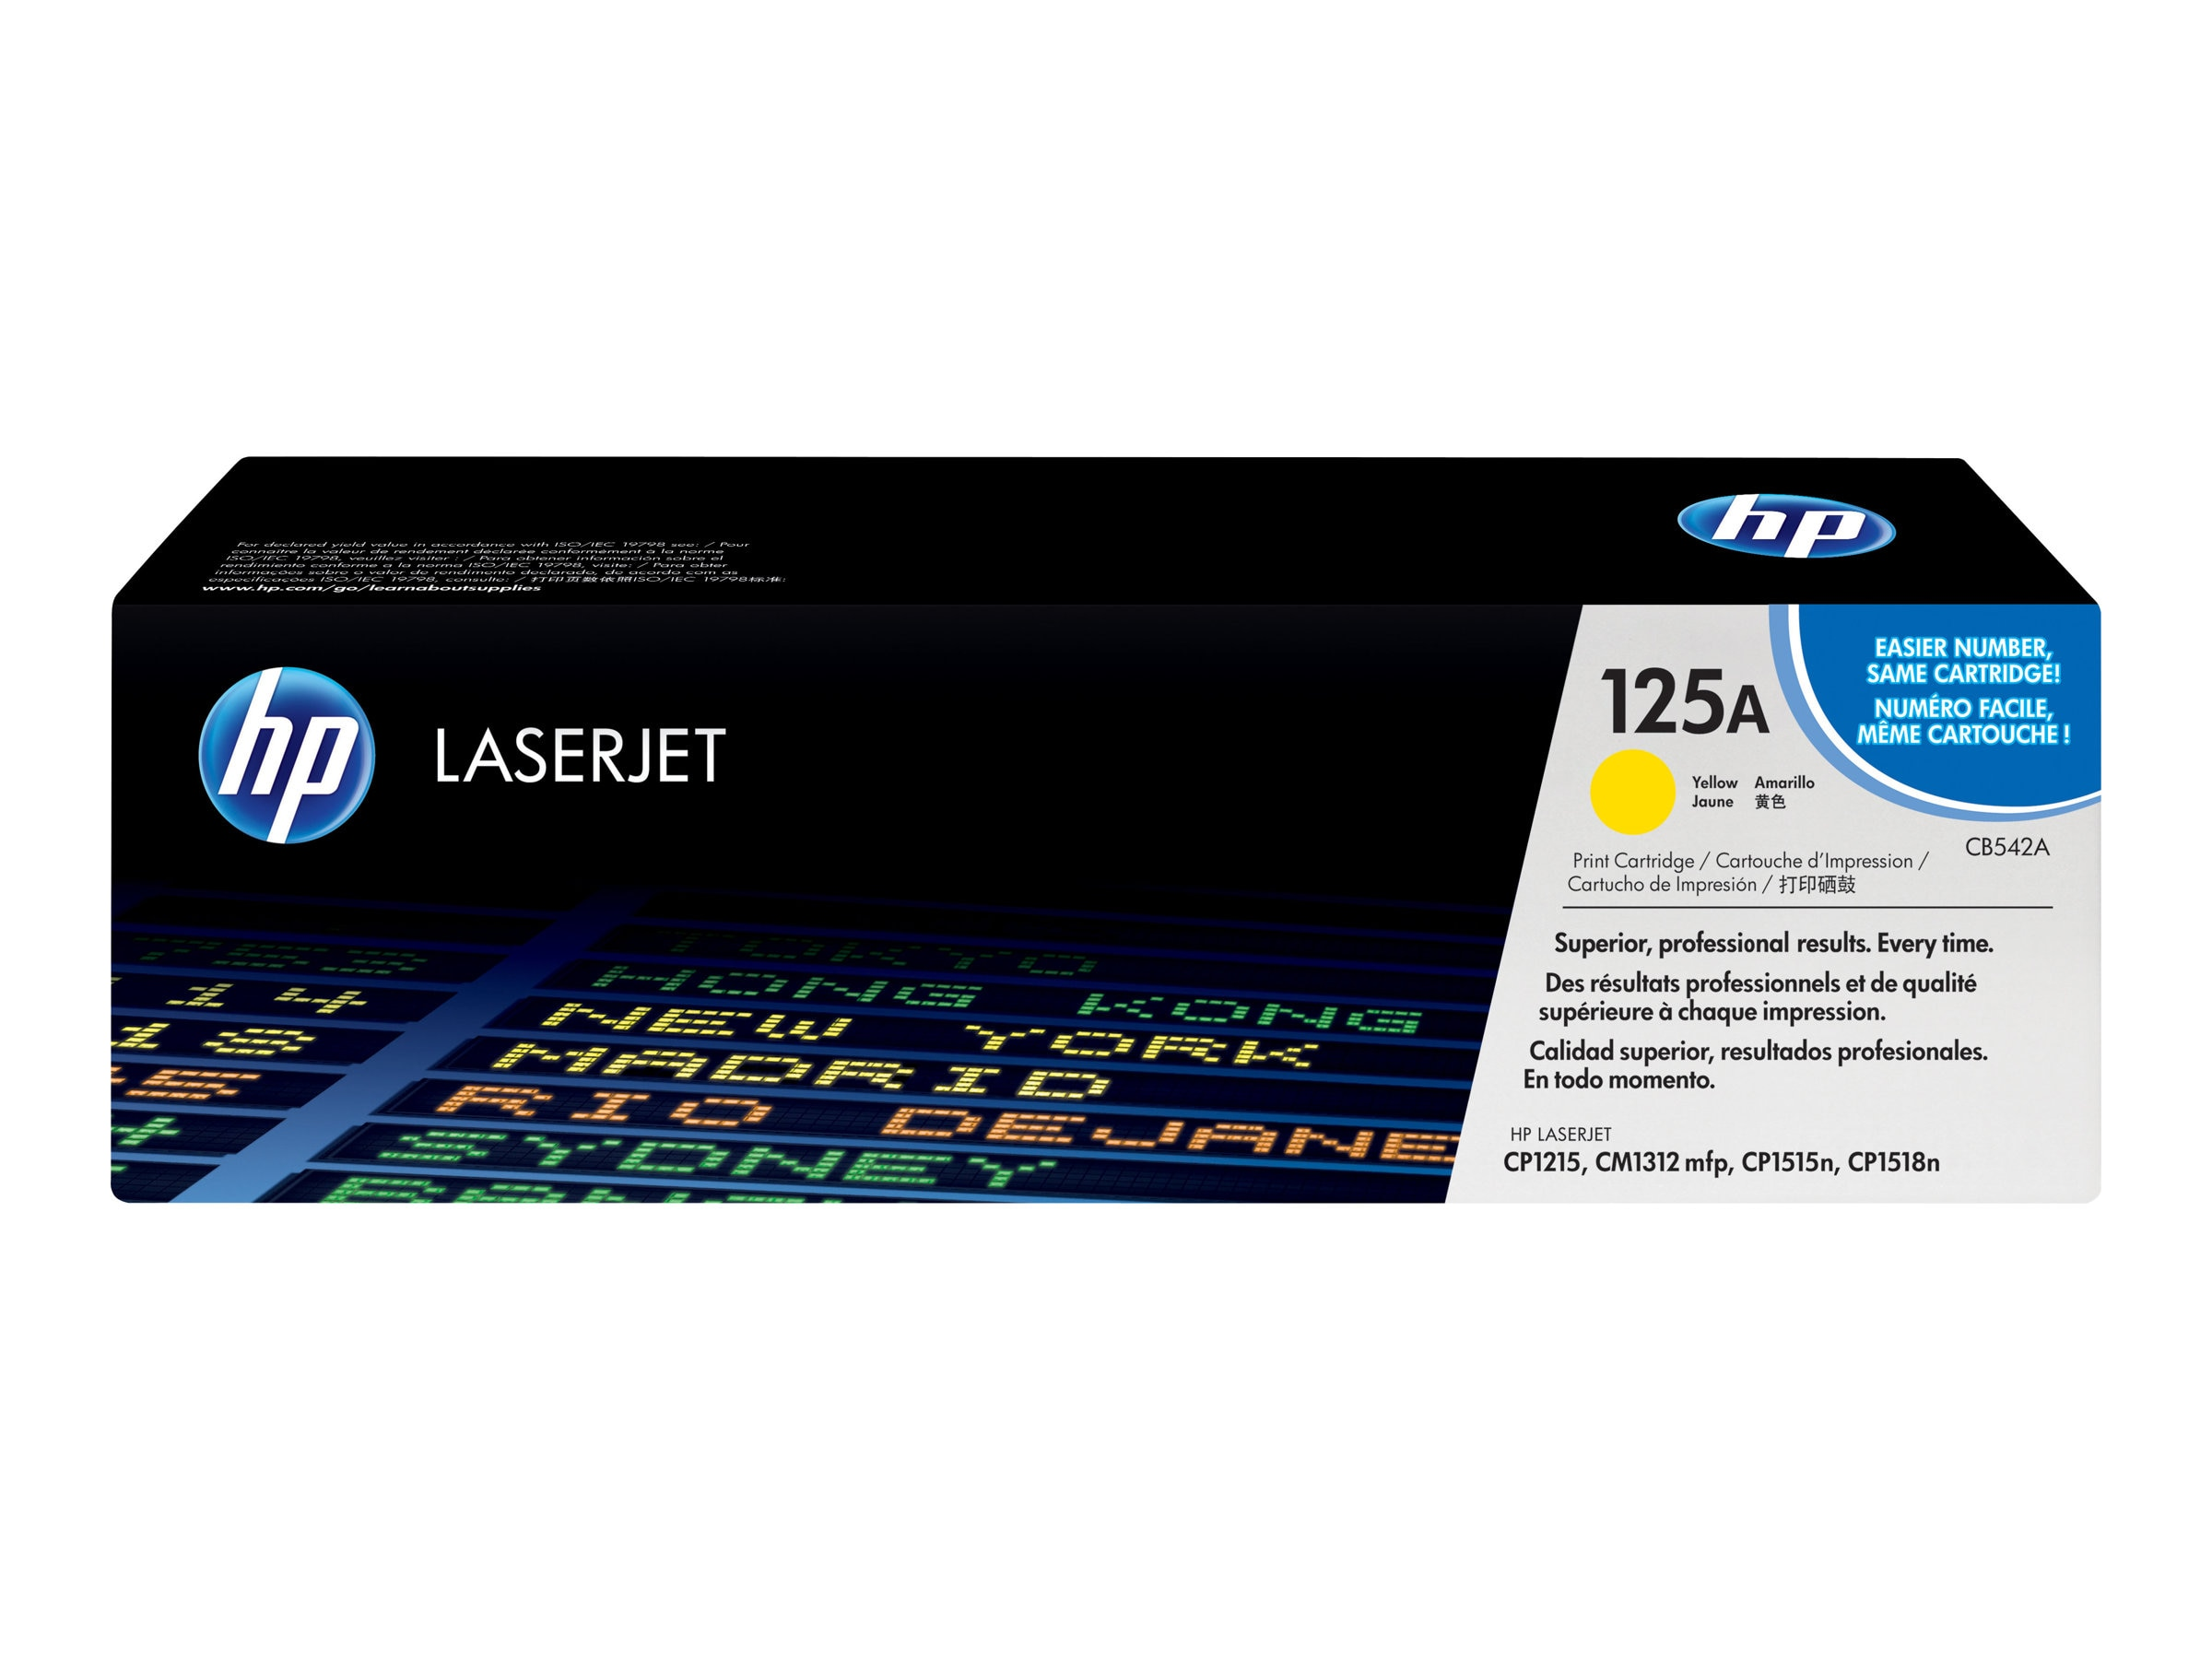 HP 125A (CB542A) Yellow Original LaserJet Toner Cartridge for HP Color LaserJet CP1215 & CP1515, CB542A, 8484169, Toner and Imaging Components